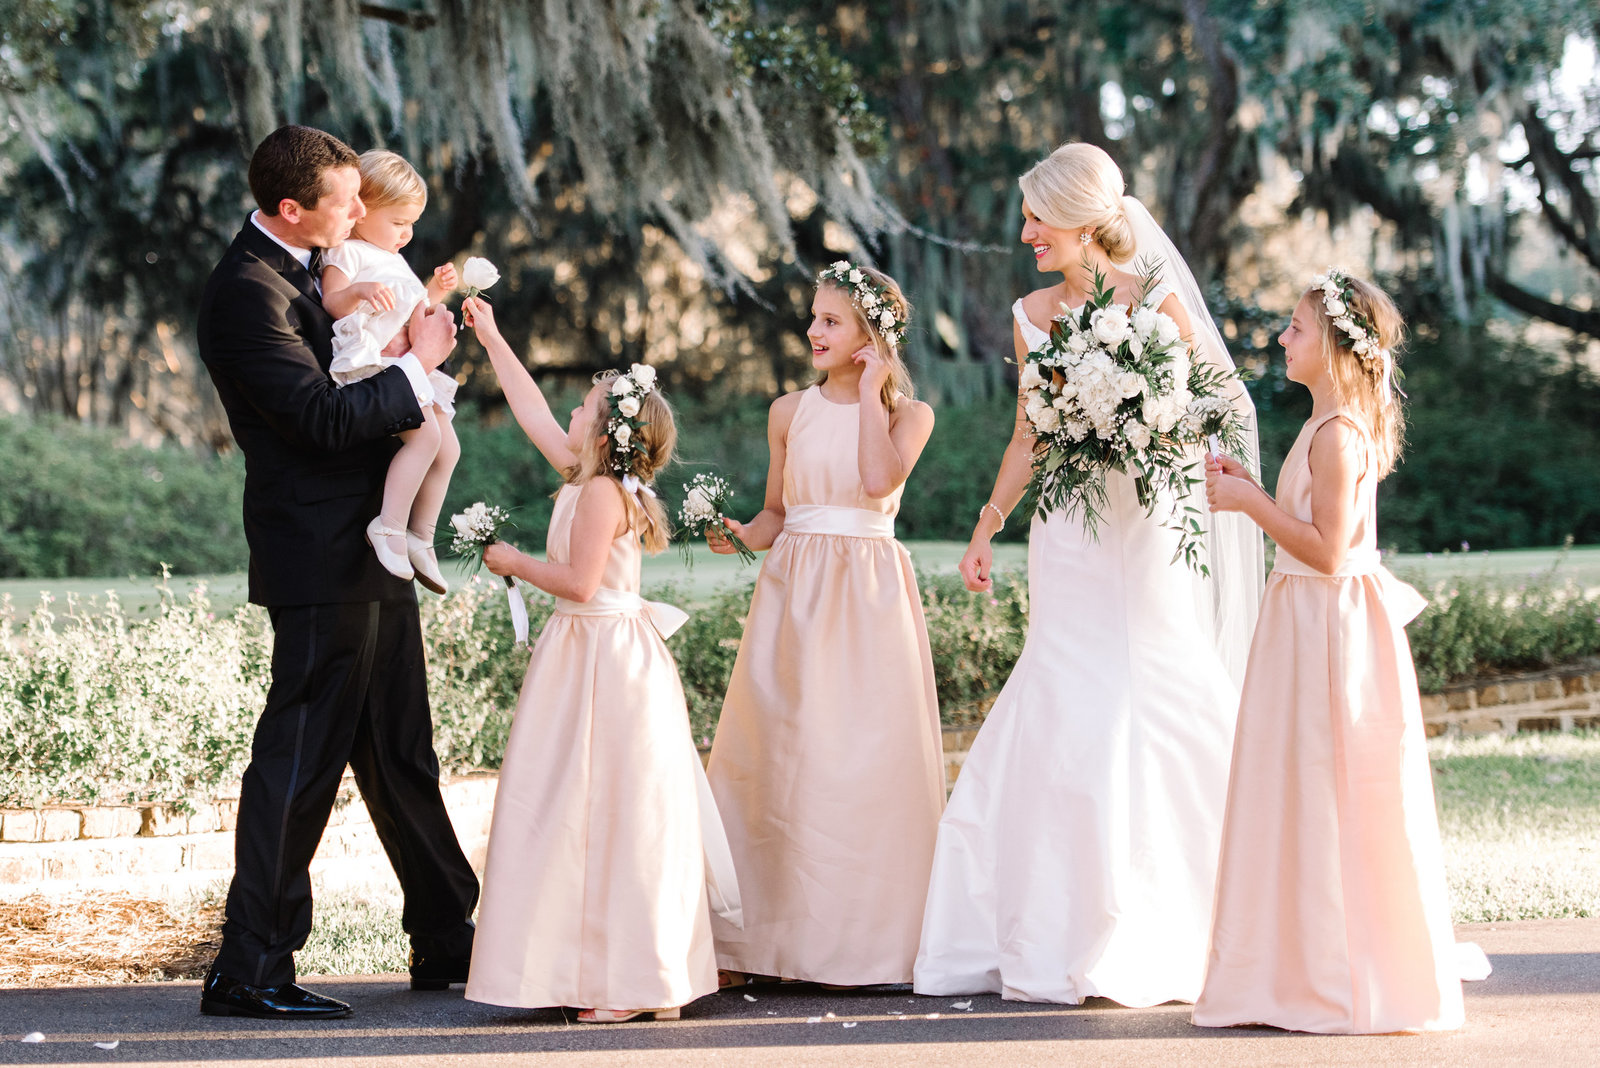 Caledonia Golf & Fish Club Wedding Photography in Pawleys Island, SC by Pasha Belman Photographer